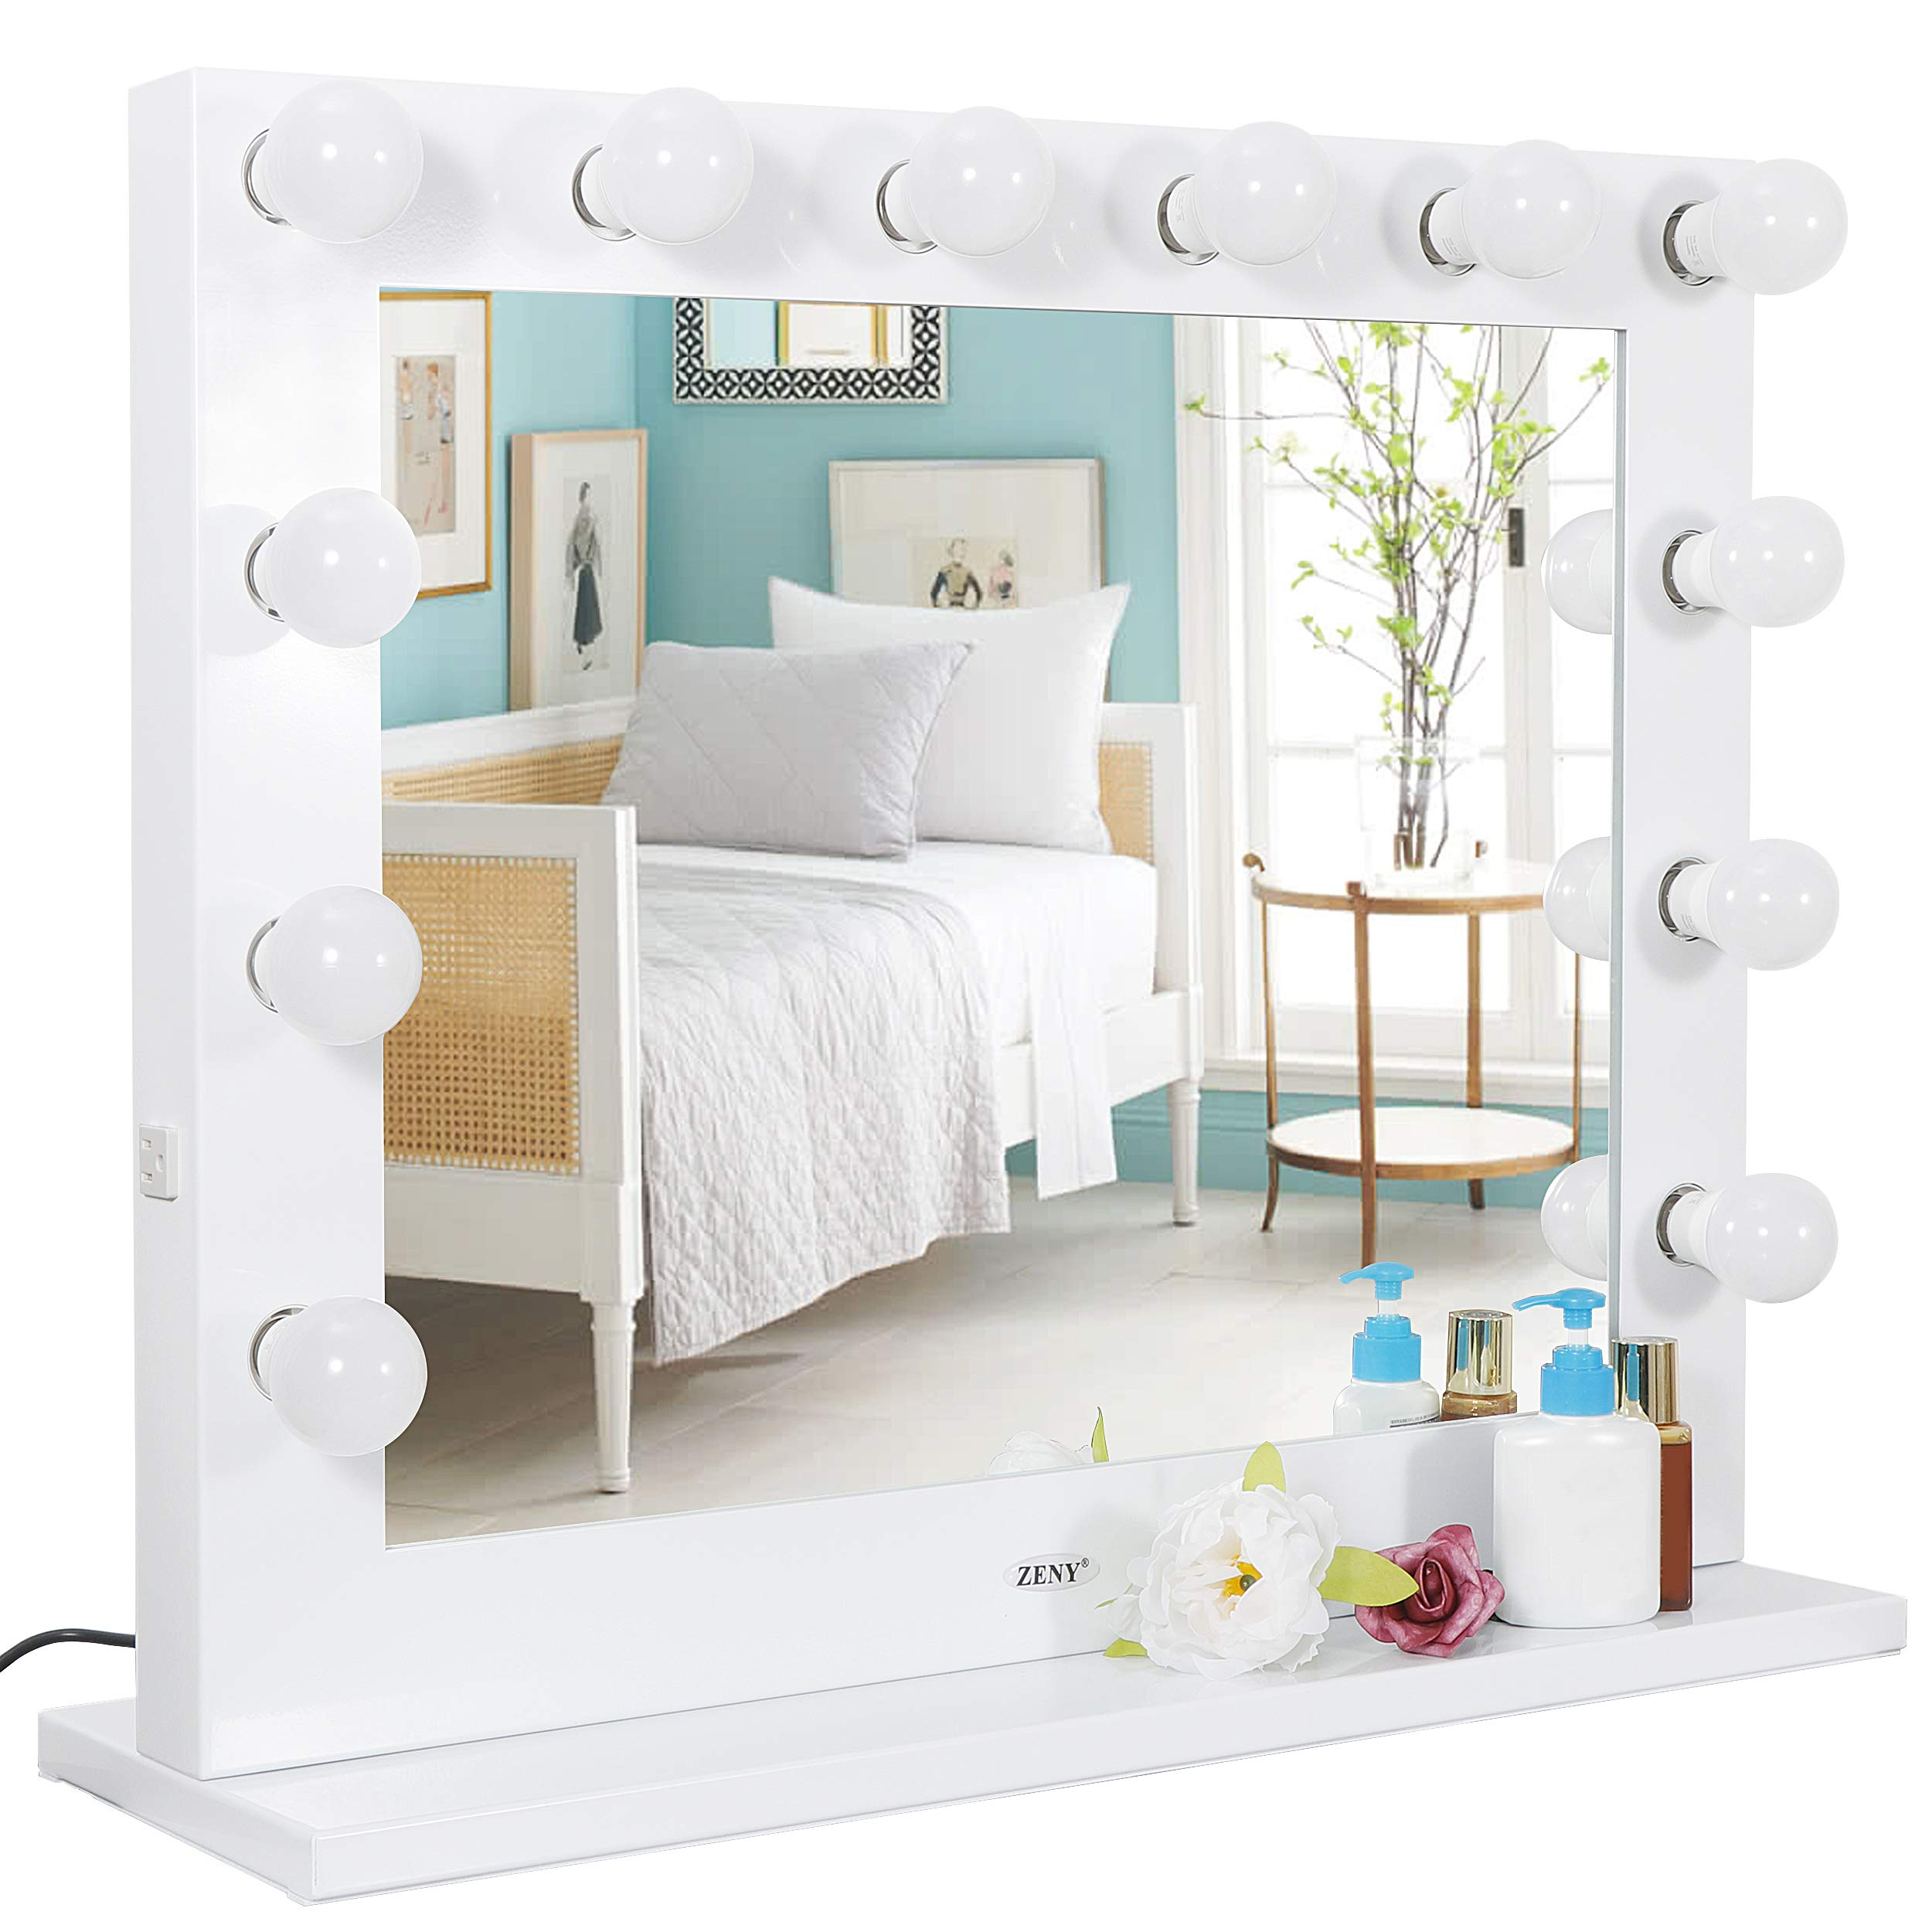 SUPER DEAL Plus Clear Hollywood Vanity Mirror Lighted Vanity Makeup Mirror Makeup Mirrors with Lights Cosmetic Makeup Mirror w/14 Dimmable Bulbs, Tabletop or Wall Mounted (Newest) by SUPER DEAL